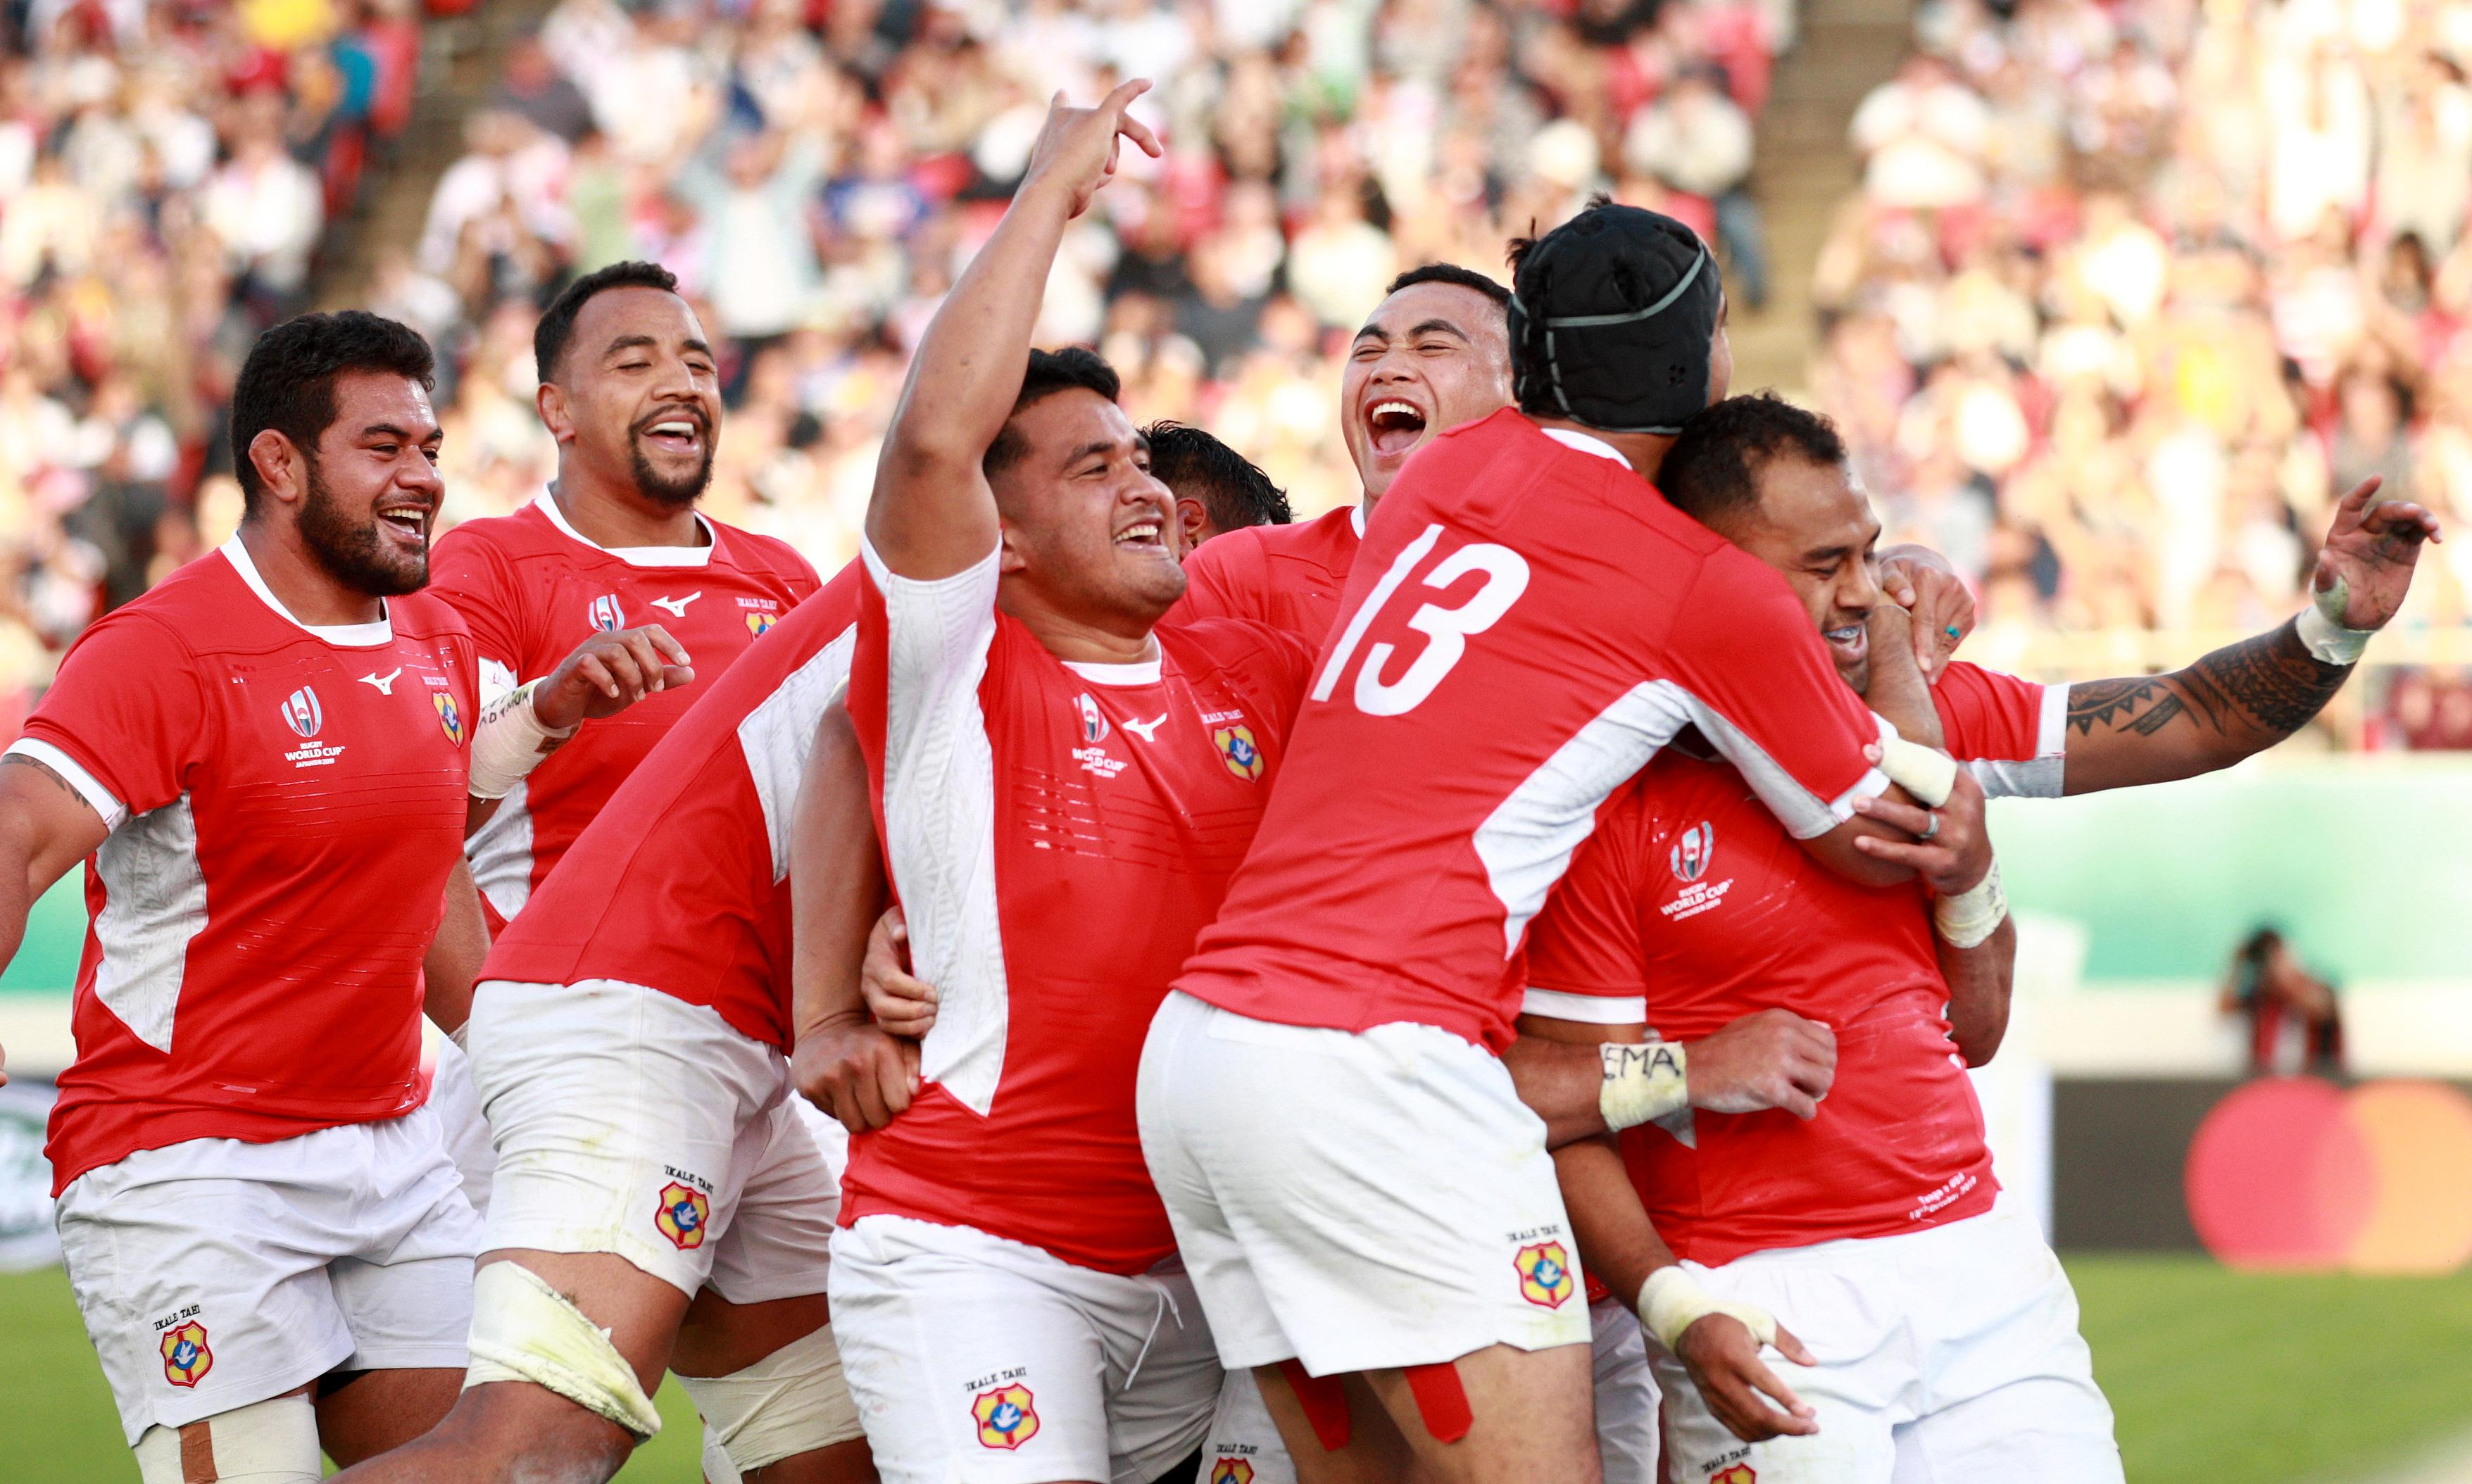 Tonga score try with last play to leave USA pointless at Rugby World Cup